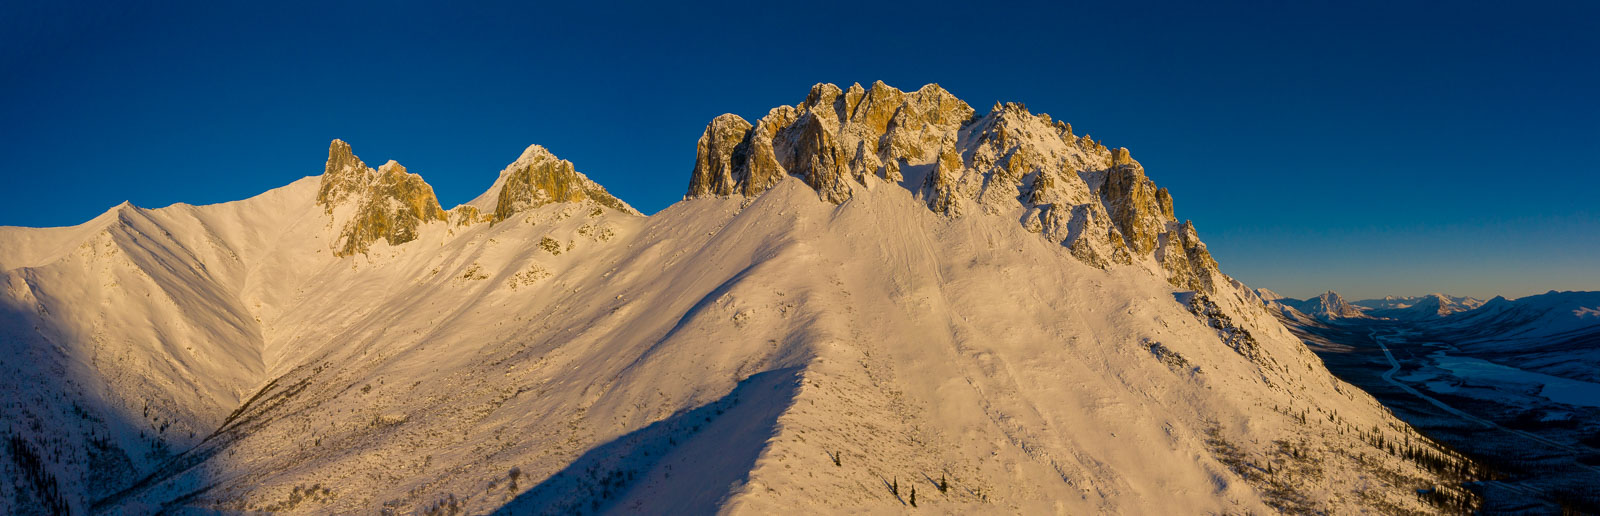 Evening light falls on one of my favorite mountains in the Brooks Range. It has no name, but it has such character.